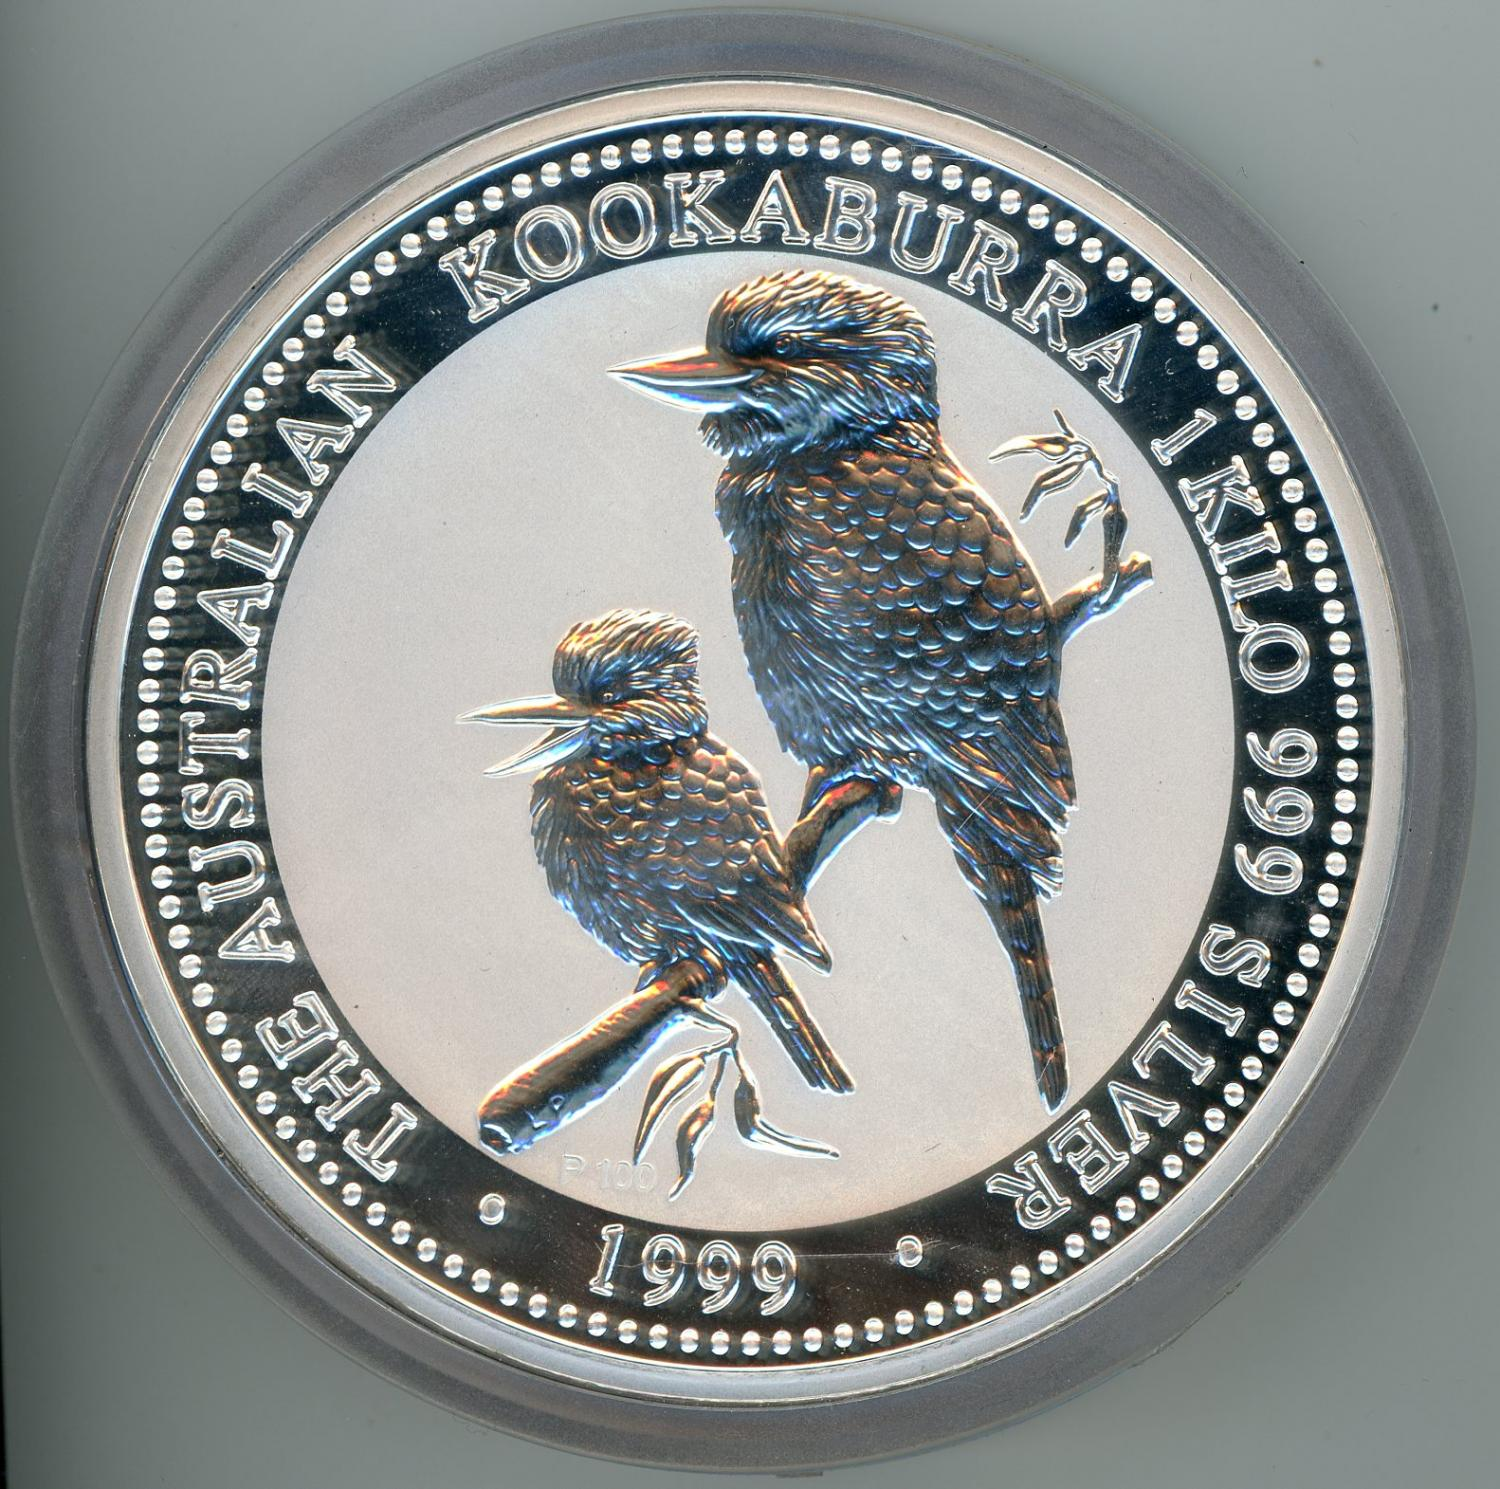 Thumbnail for 1999 One Kilo Silver Kookaburra